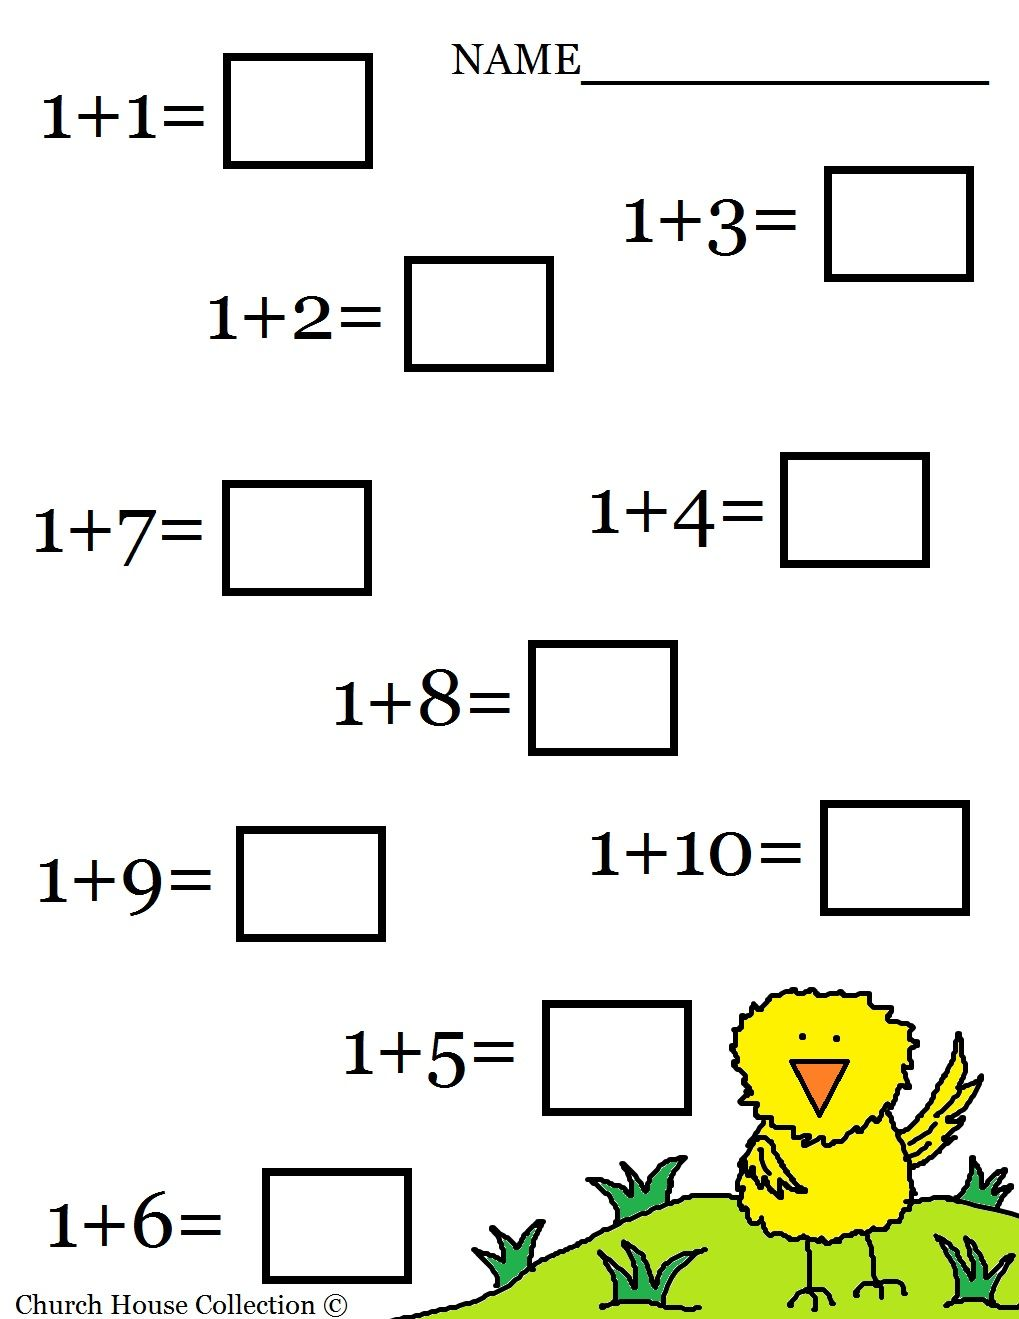 Aldiablosus  Surprising  Images About Worksheets  Math On Pinterest  Math Sheets  With Glamorous  Images About Worksheets  Math On Pinterest  Math Sheets Math Worksheets For Kindergarten And Simple Addition With Adorable Multiplying By  Worksheets Also  Step Training Model Worksheet In Addition Spanish Imperfect Worksheet And Place Value Patterns Worksheets As Well As Coordinate Plane Practice Worksheet Additionally Multiplying Fractions Worksheets Th Grade From Pinterestcom With Aldiablosus  Glamorous  Images About Worksheets  Math On Pinterest  Math Sheets  With Adorable  Images About Worksheets  Math On Pinterest  Math Sheets Math Worksheets For Kindergarten And Simple Addition And Surprising Multiplying By  Worksheets Also  Step Training Model Worksheet In Addition Spanish Imperfect Worksheet From Pinterestcom